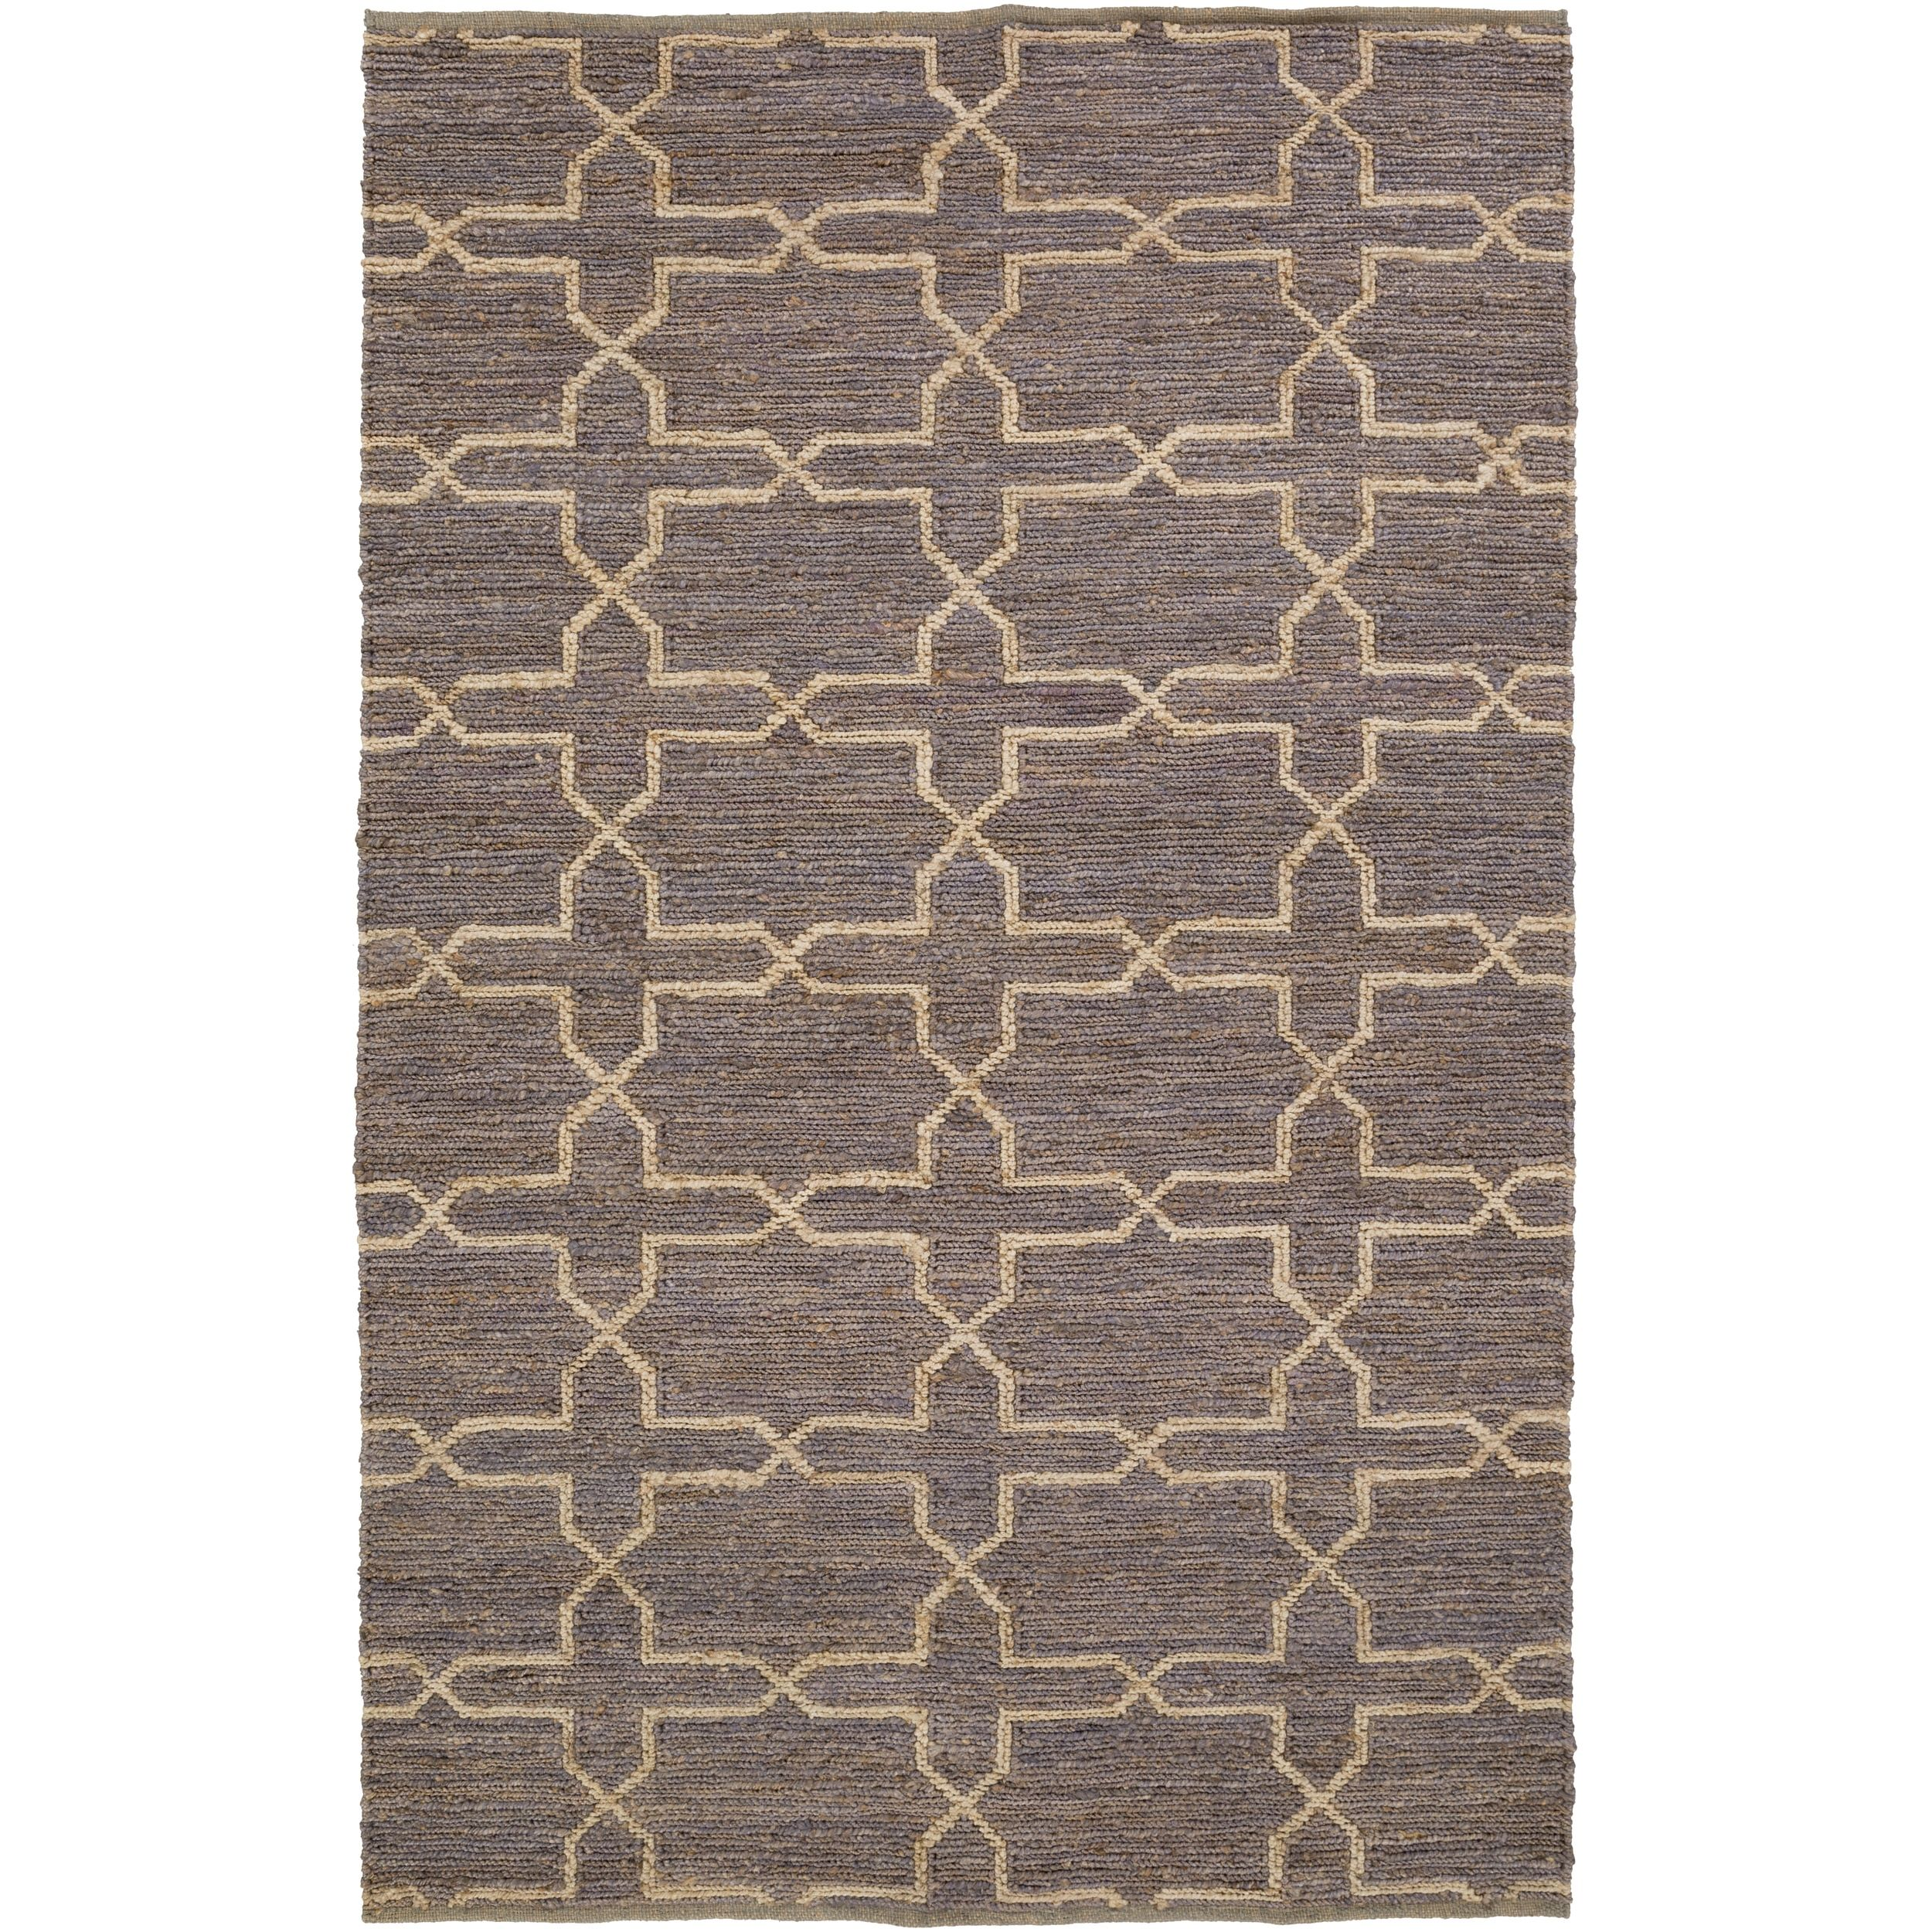 Country Living :Hand-Knotted Juliana Country Rug